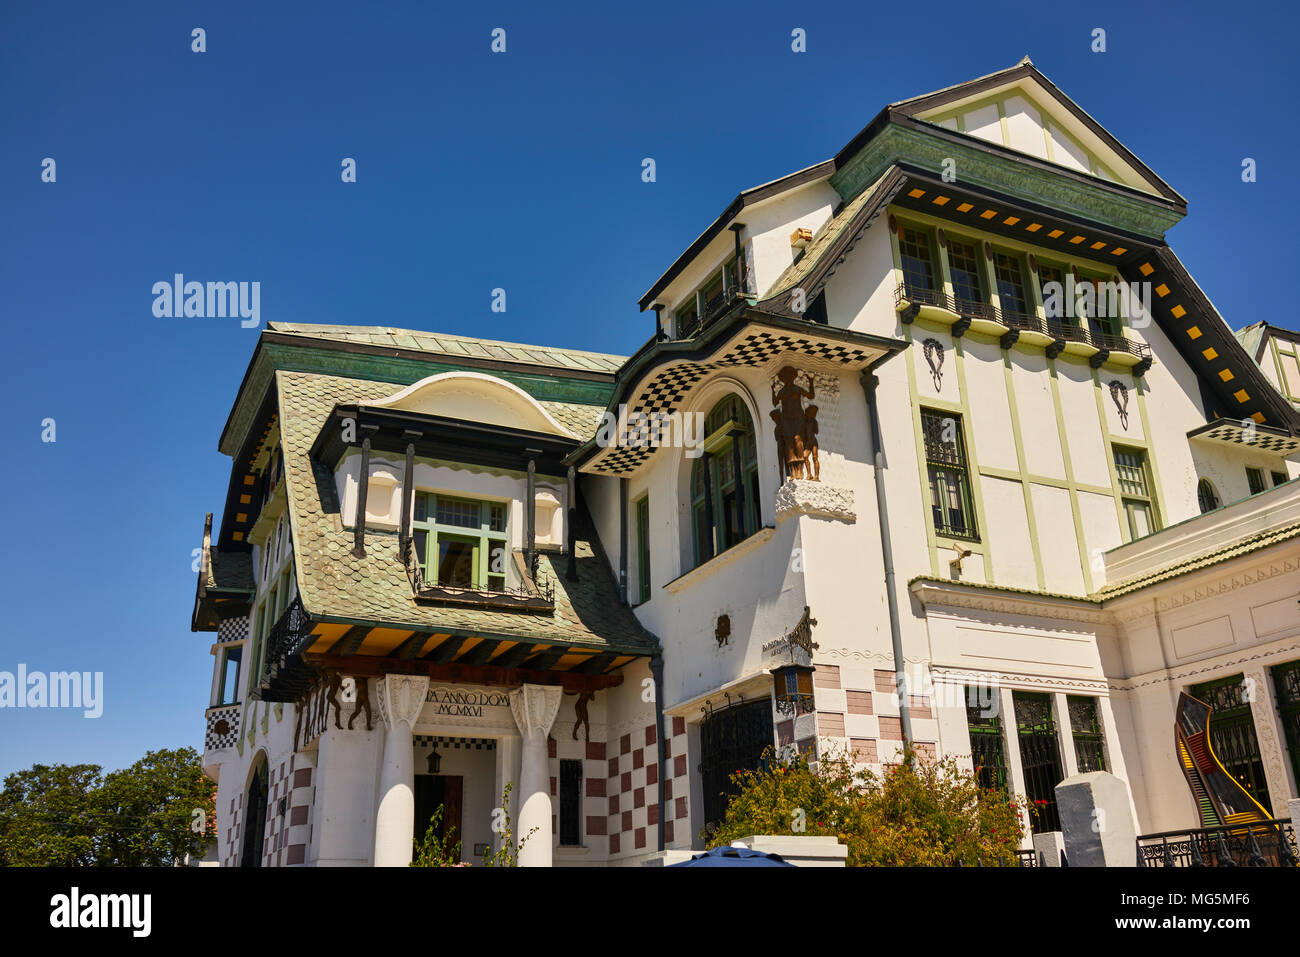 Building exterior of the Municipal Museum of Fine Arts in Valparaiso, Chile. A cloudless summer sky above. Low angle shot. - Stock Image